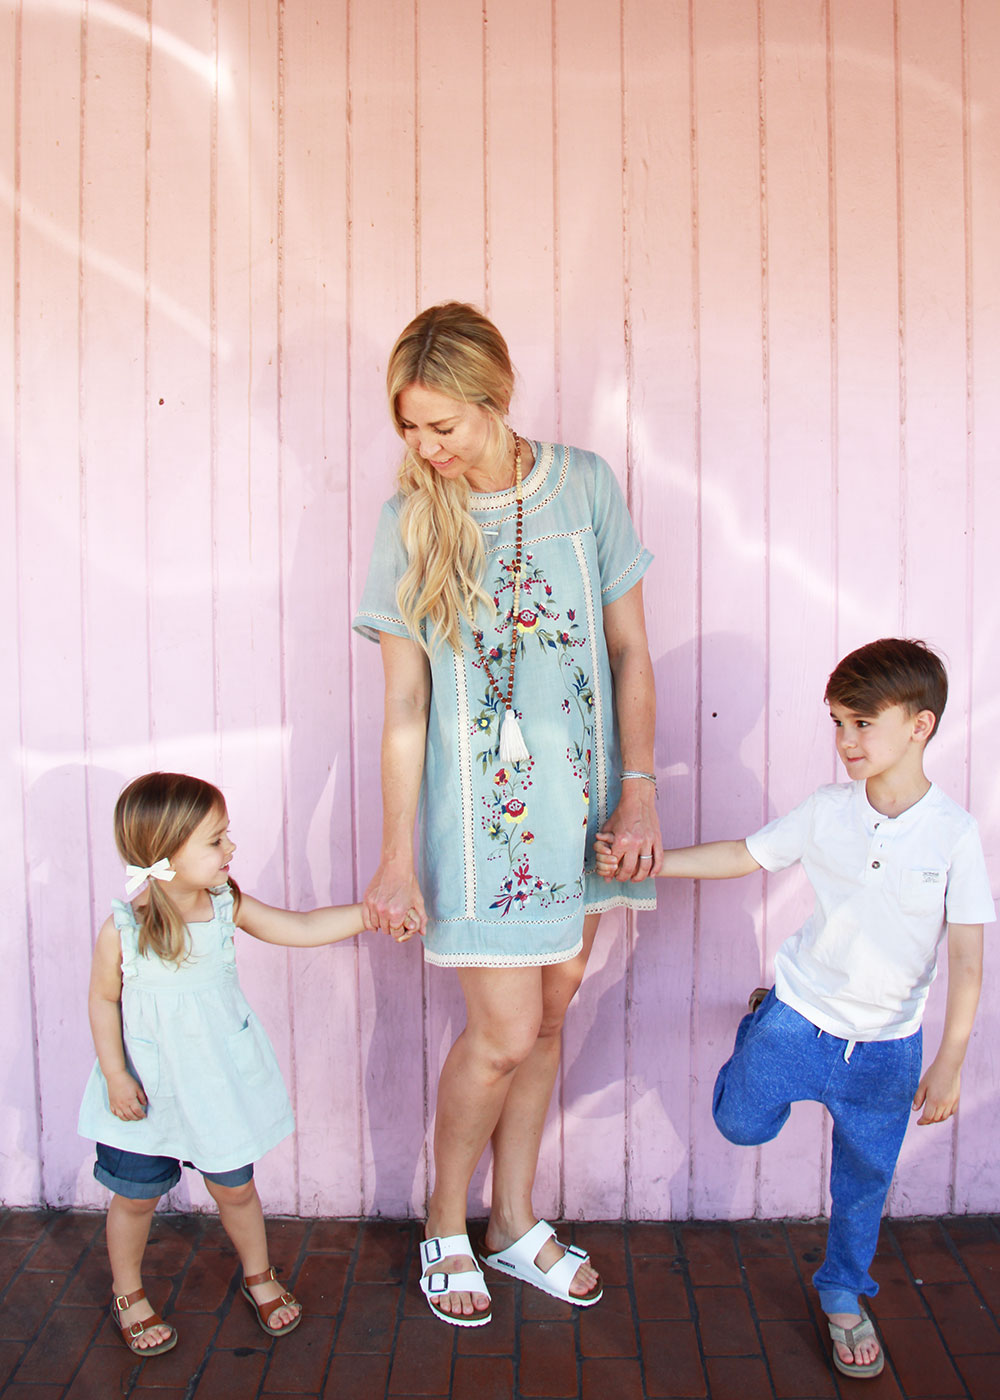 spring break for the kids this week and spring outfits to match! | thelovedeisgnedlife.com